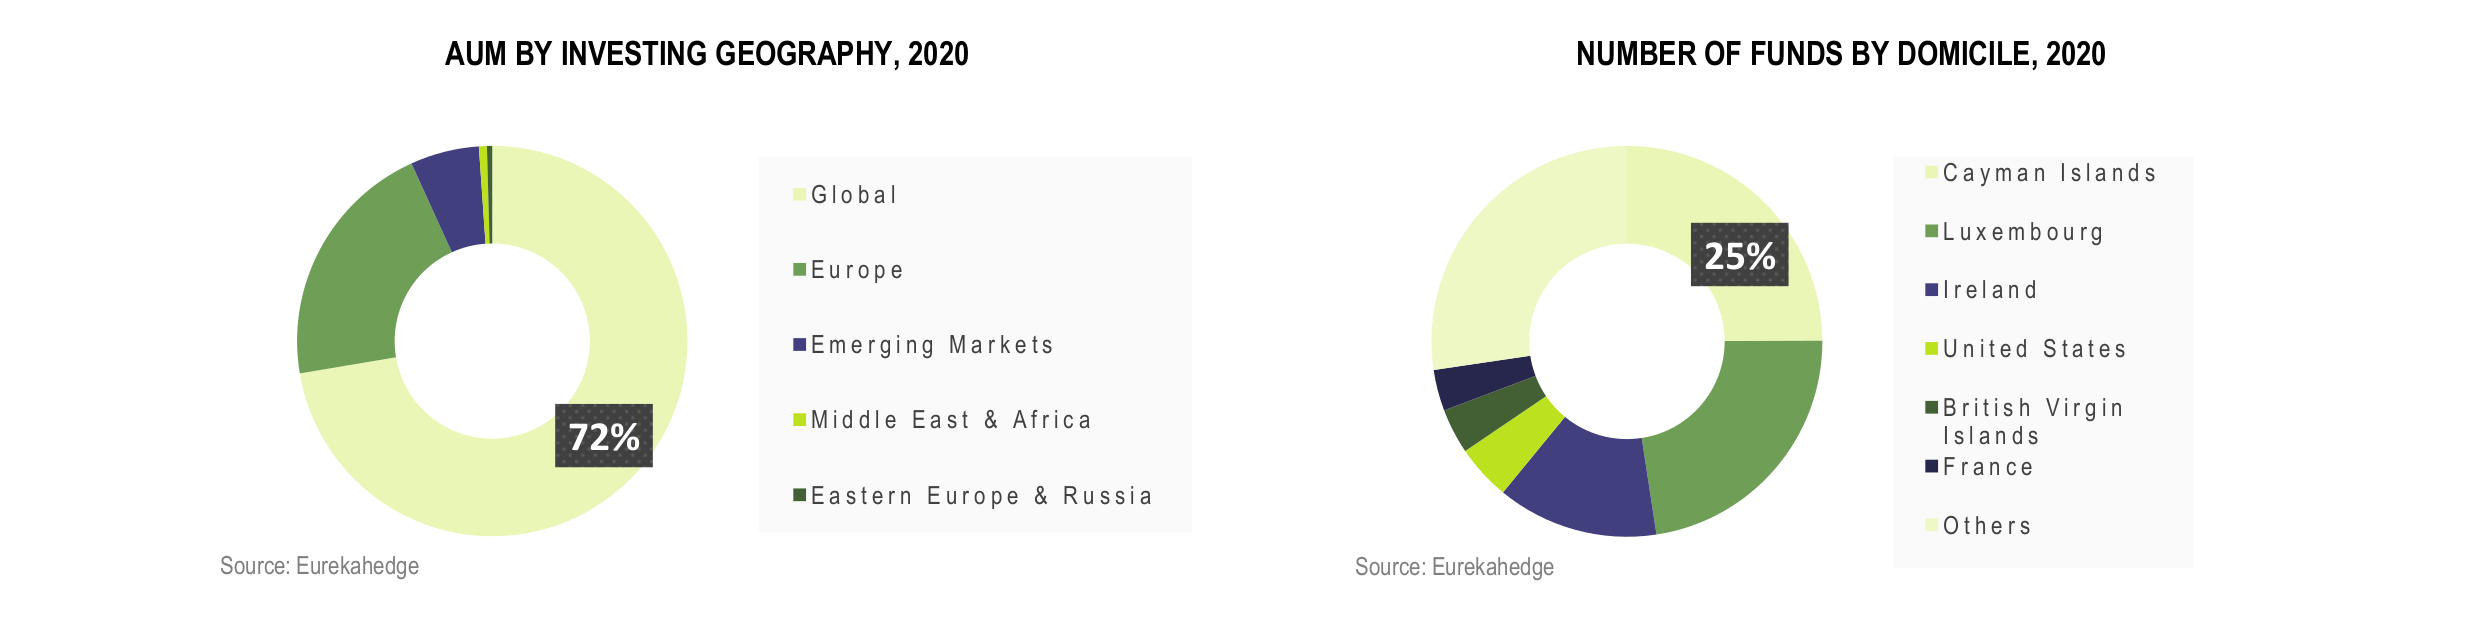 European Hedge Funds Infographic December 2020 - AUM by investing geography and domicile